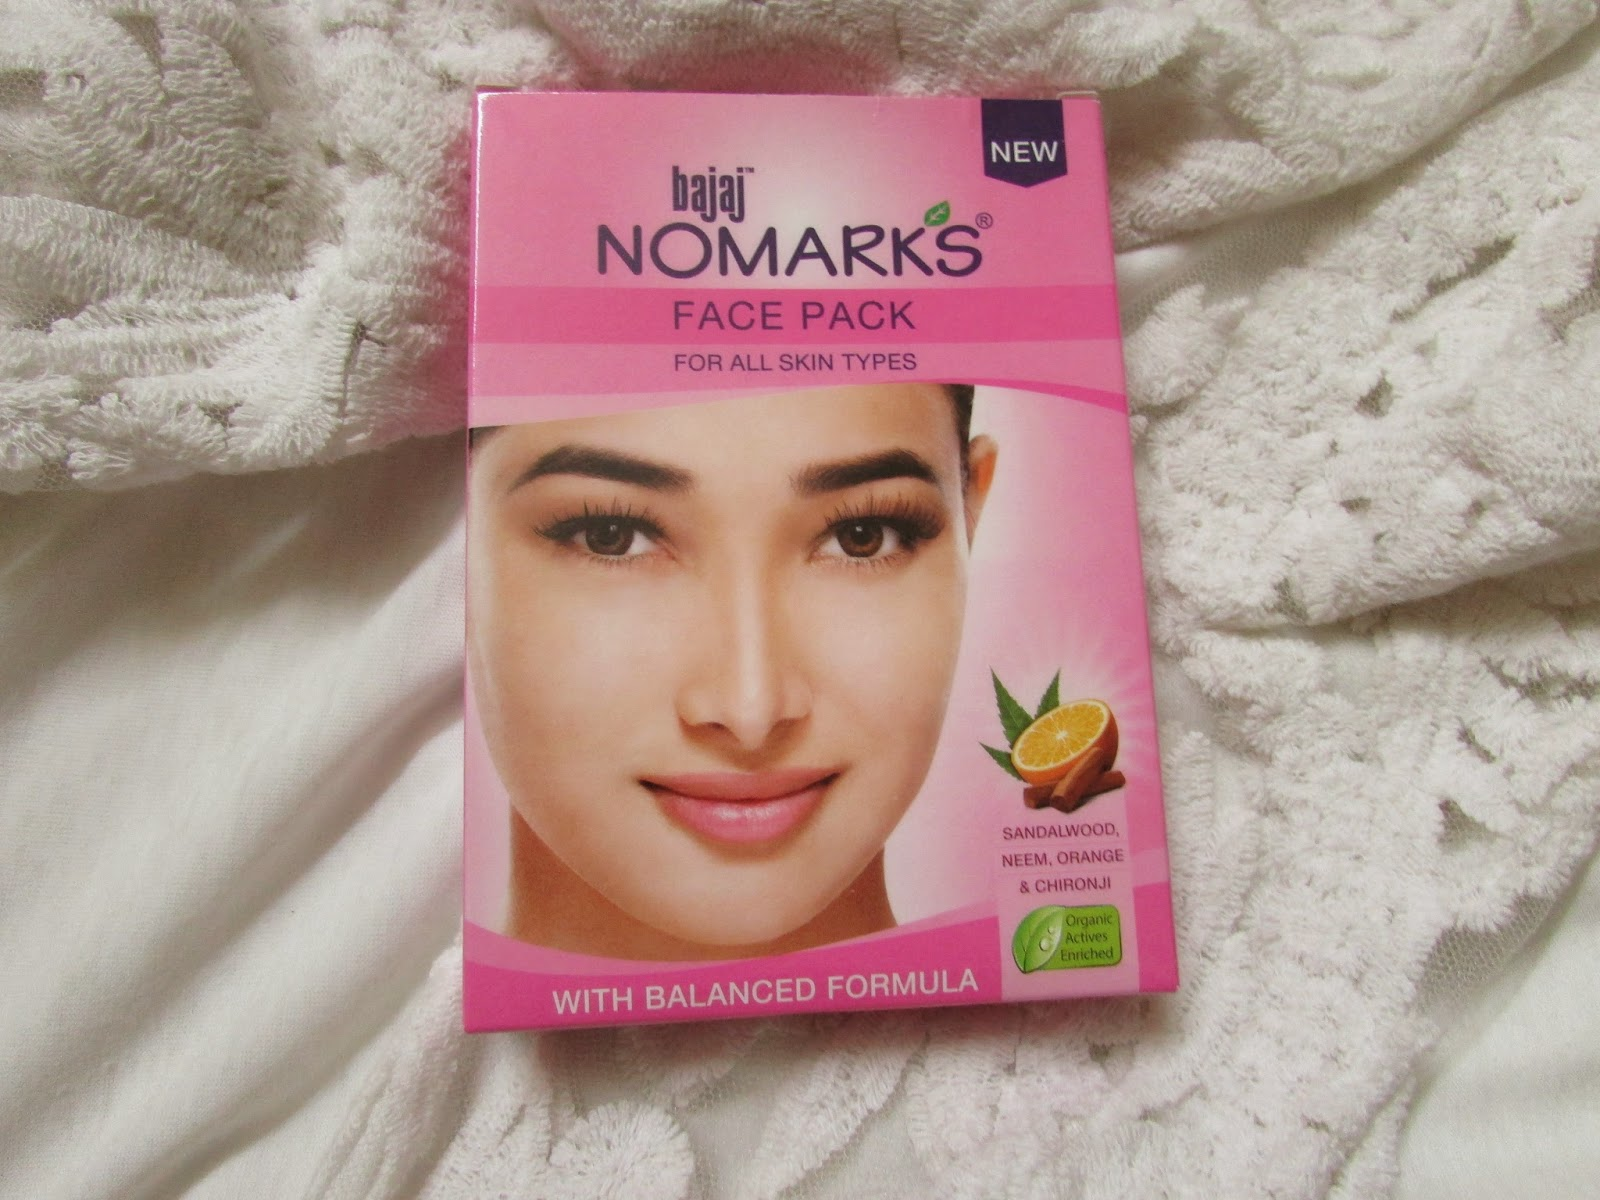 Nomarks Face Pack Review, Nomarks Face Pack Review India, best face pack, cheap face pack for all skin types, face pack for acne, best face pack for oily skin, skincare, oily skin skincare, how to get rid of acne,himiliya face pack , neem face pack , neem pack , himiliya neem pack , himiliya neem face pack , hilimiya neem face pack review , himiliya neem face pack review india , himiliya neem face pack price, himiliya neem pace pack price, face pack for oily skin , face pack for acne prone skin , face pack for oil and acne prone skin , best face pack for oily skin , best face pack for acne probe skin ,